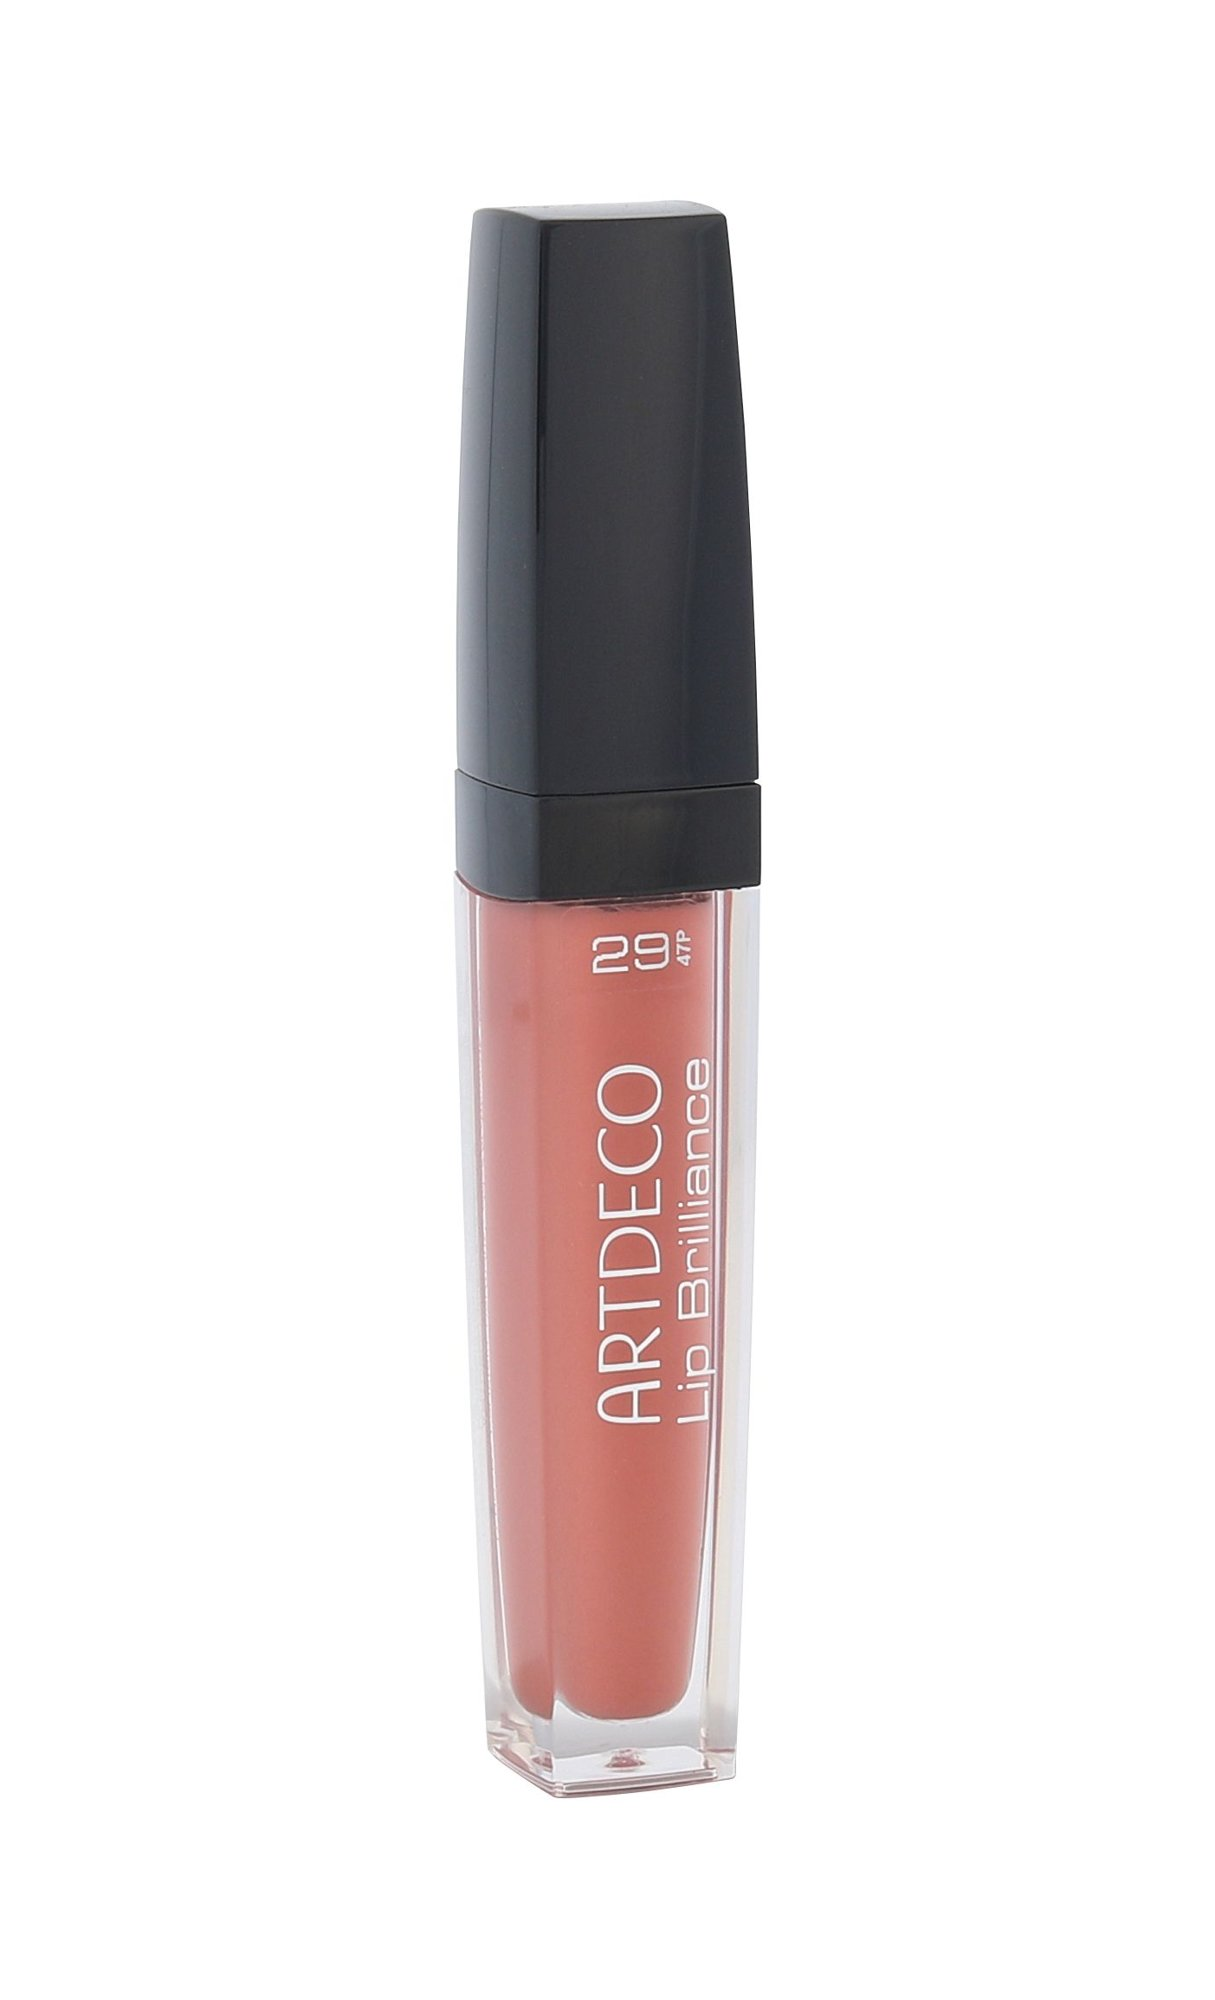 Artdeco Lip Brilliance Cosmetic 5ml 29 Brilliant Strong Salmon